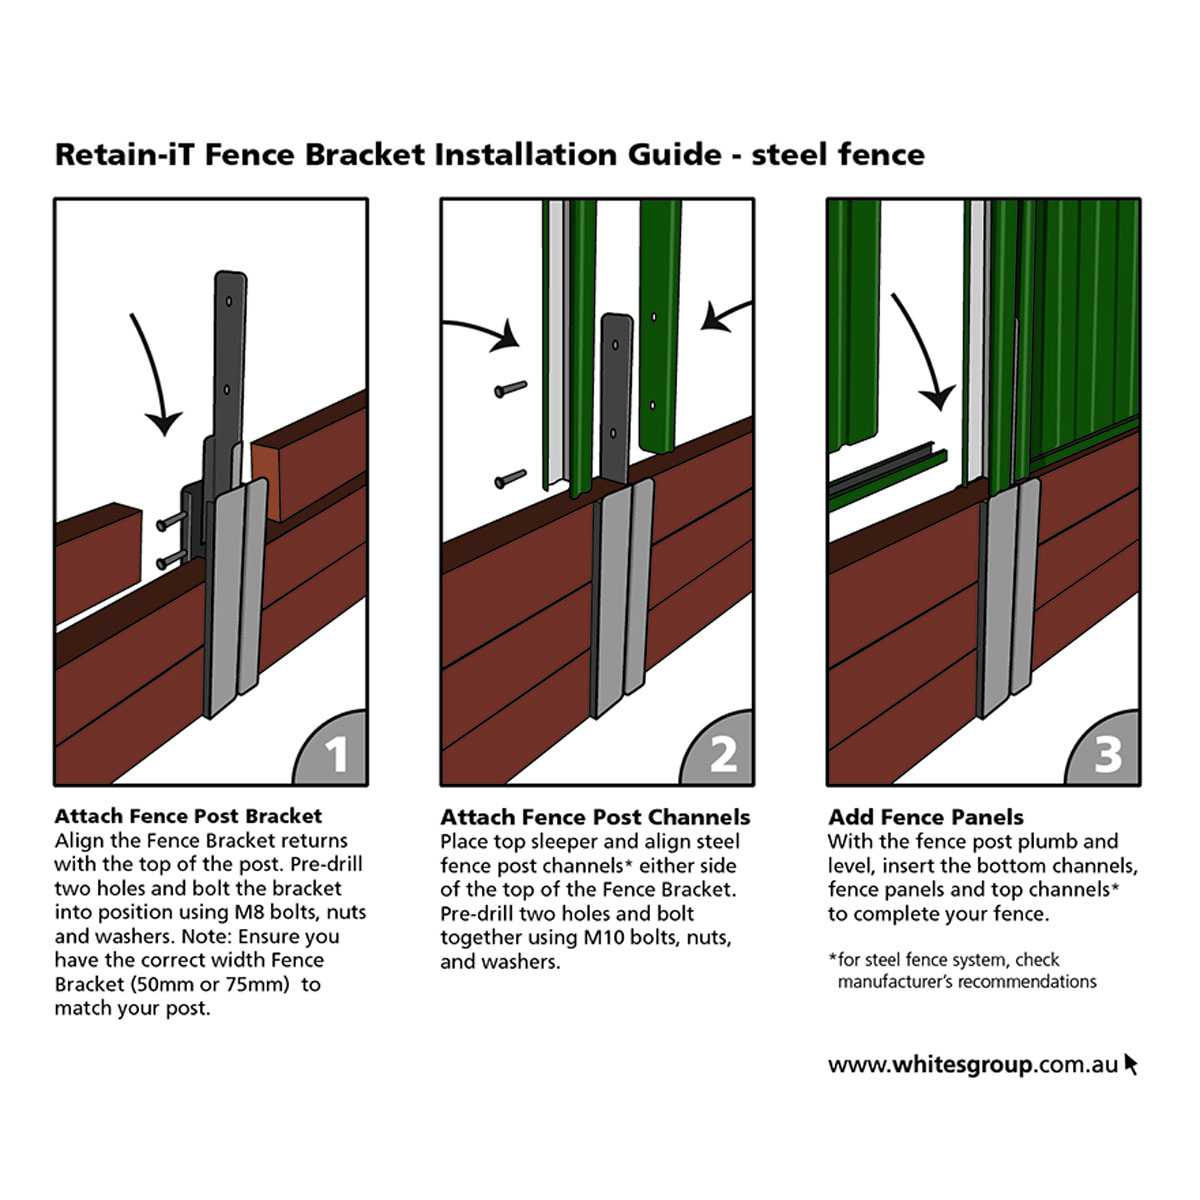 Retain iT fence bracket instructions for steel fence